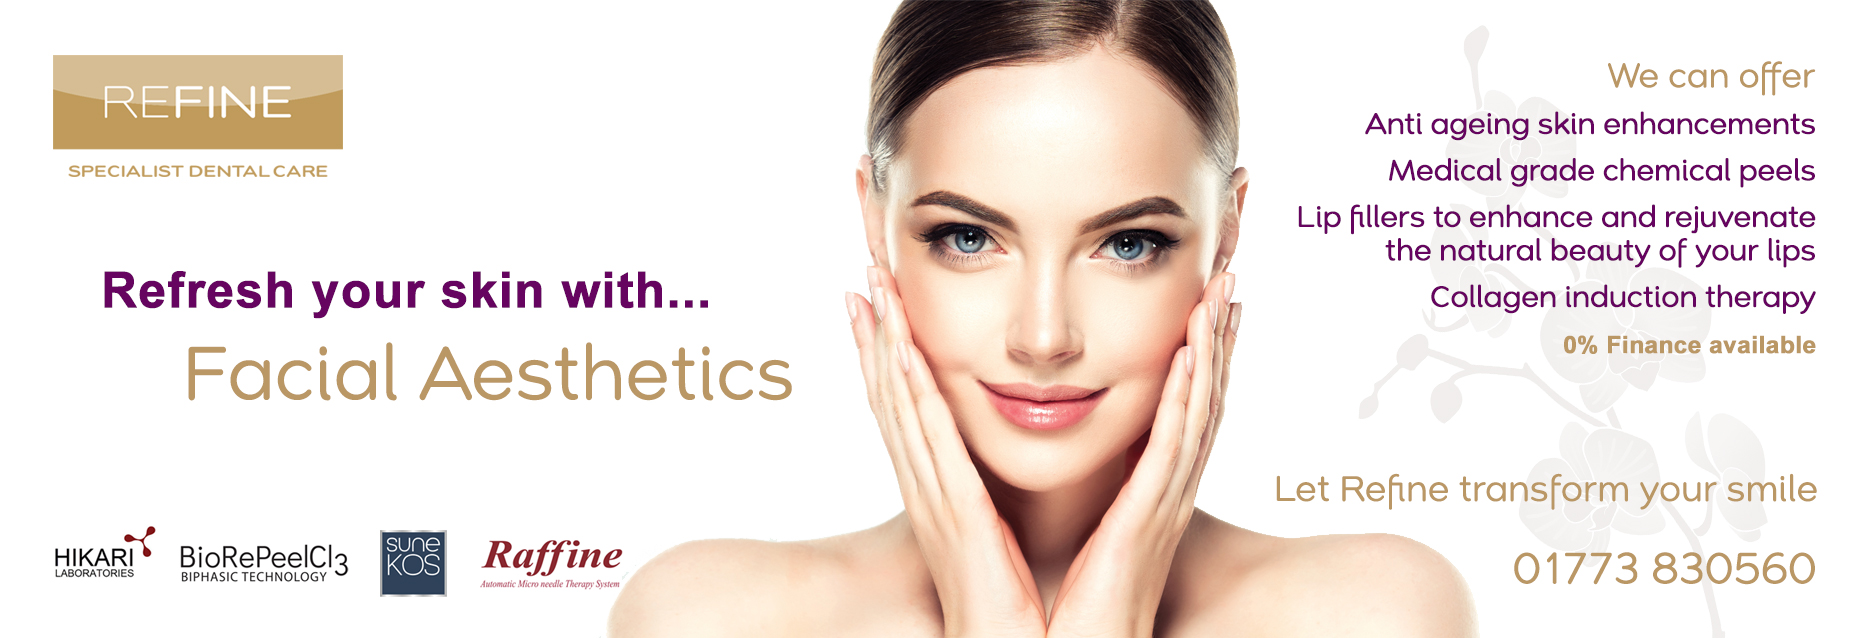 facial aesthetics at Refine Specialist Dental Care